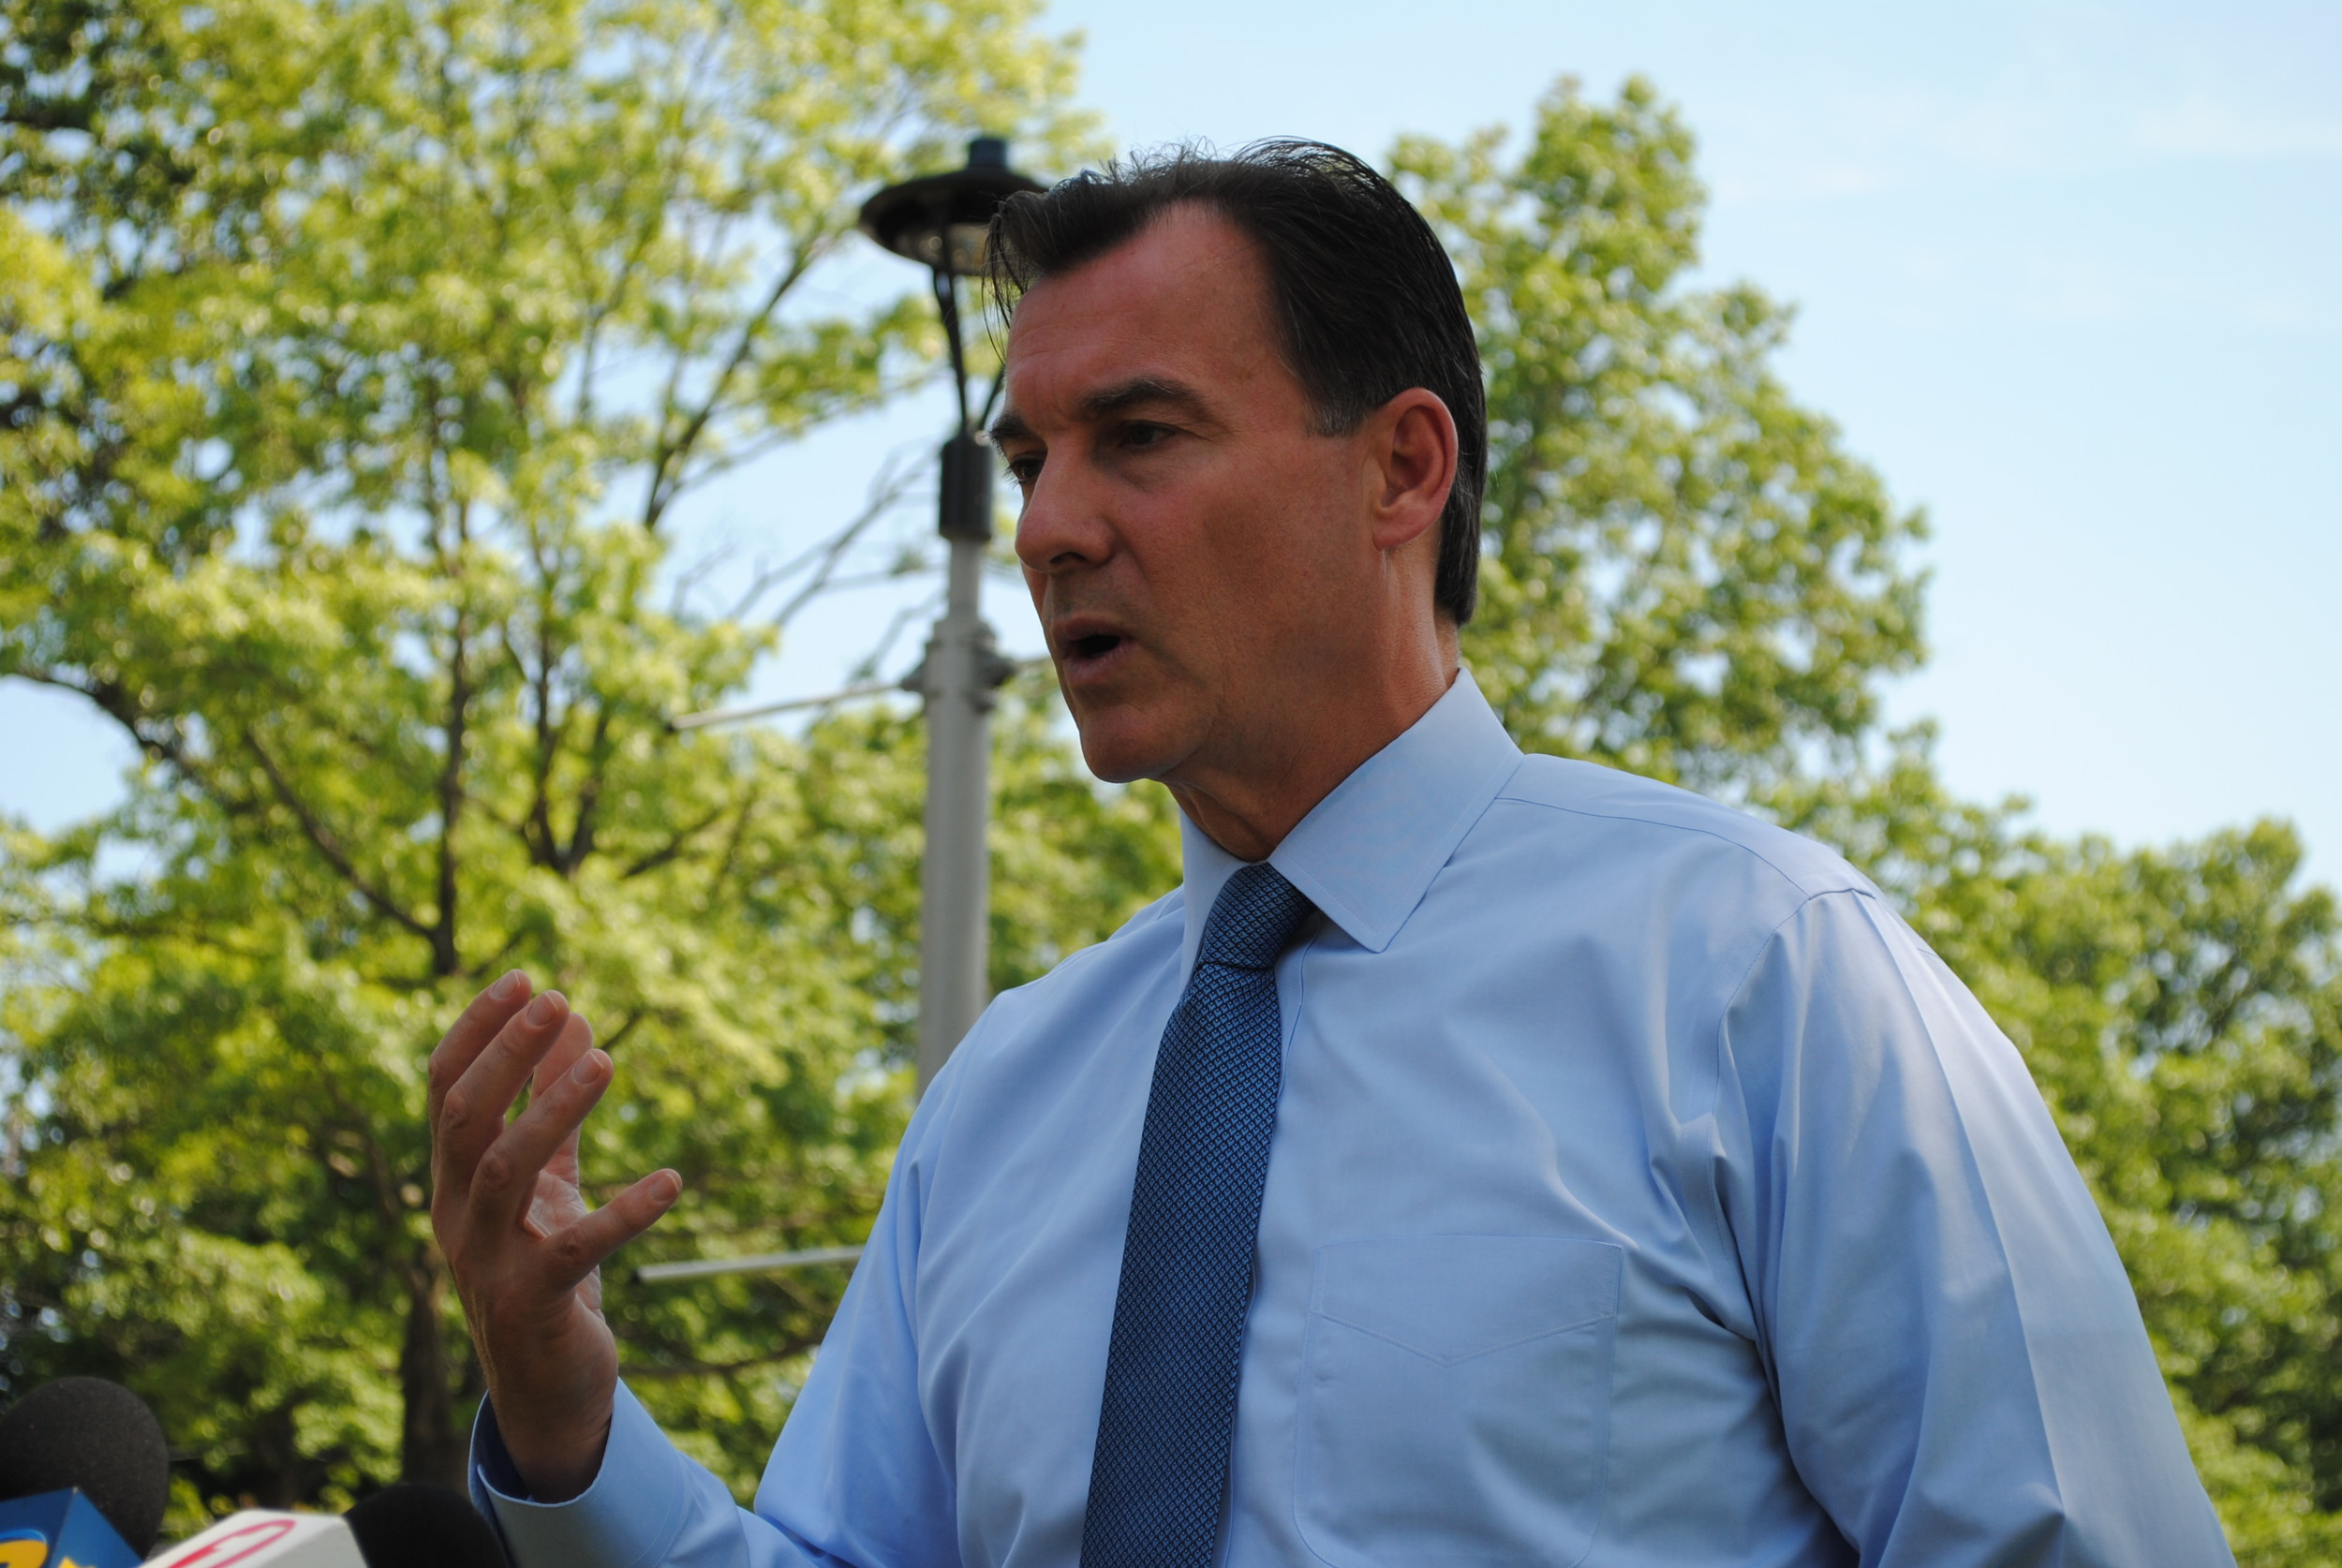 Outside Glen Cove Hospital on Monday, U.S. Rep. Tom Suozzi announced a plan developed by the Problem Solvers Caucus to stabilize the individual health care market.